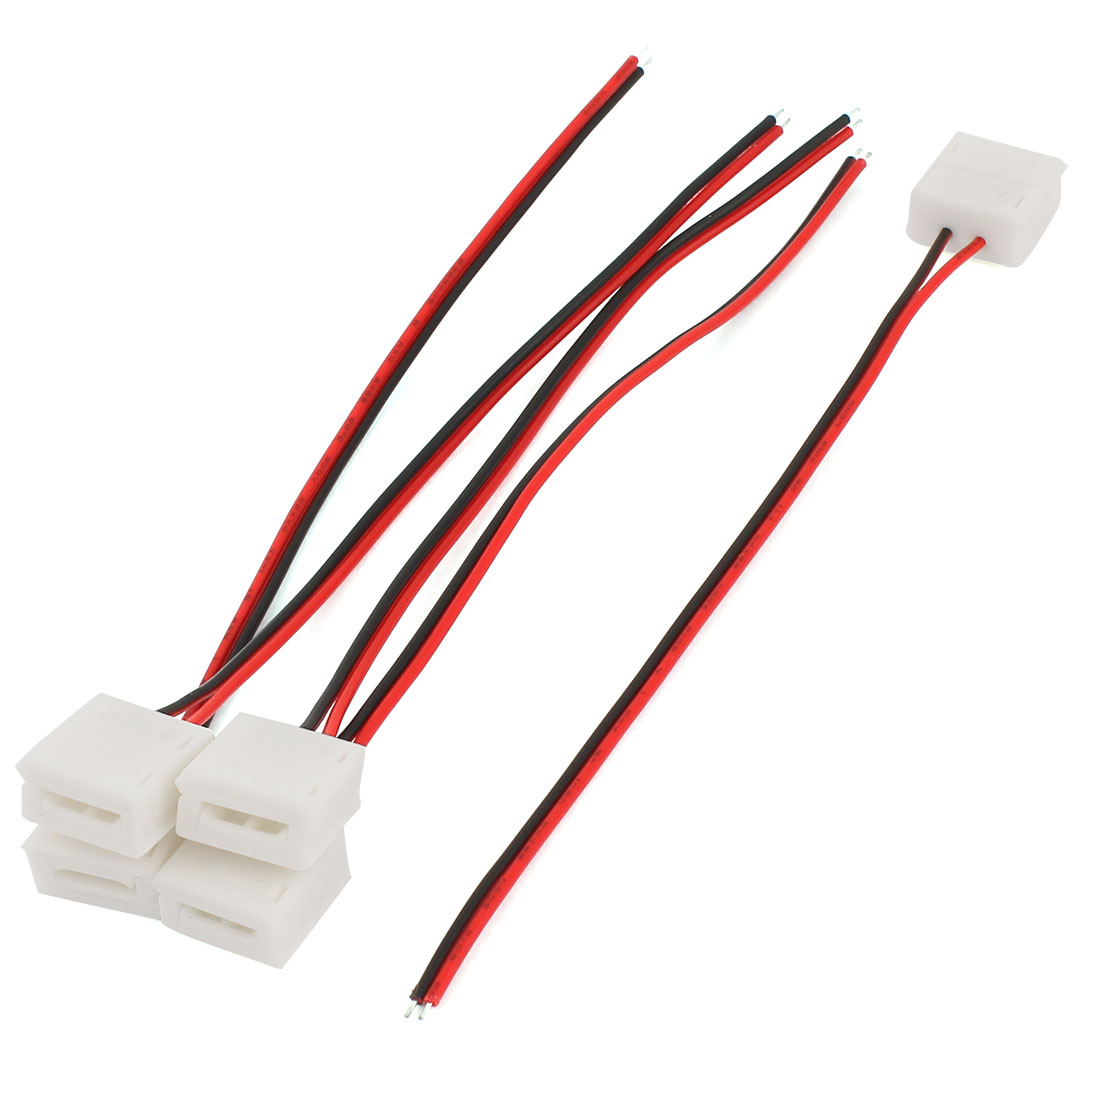 "5pcs 6"" Long 2 Pole Terminal Wire Connector for 5050 RGB LED Strip"